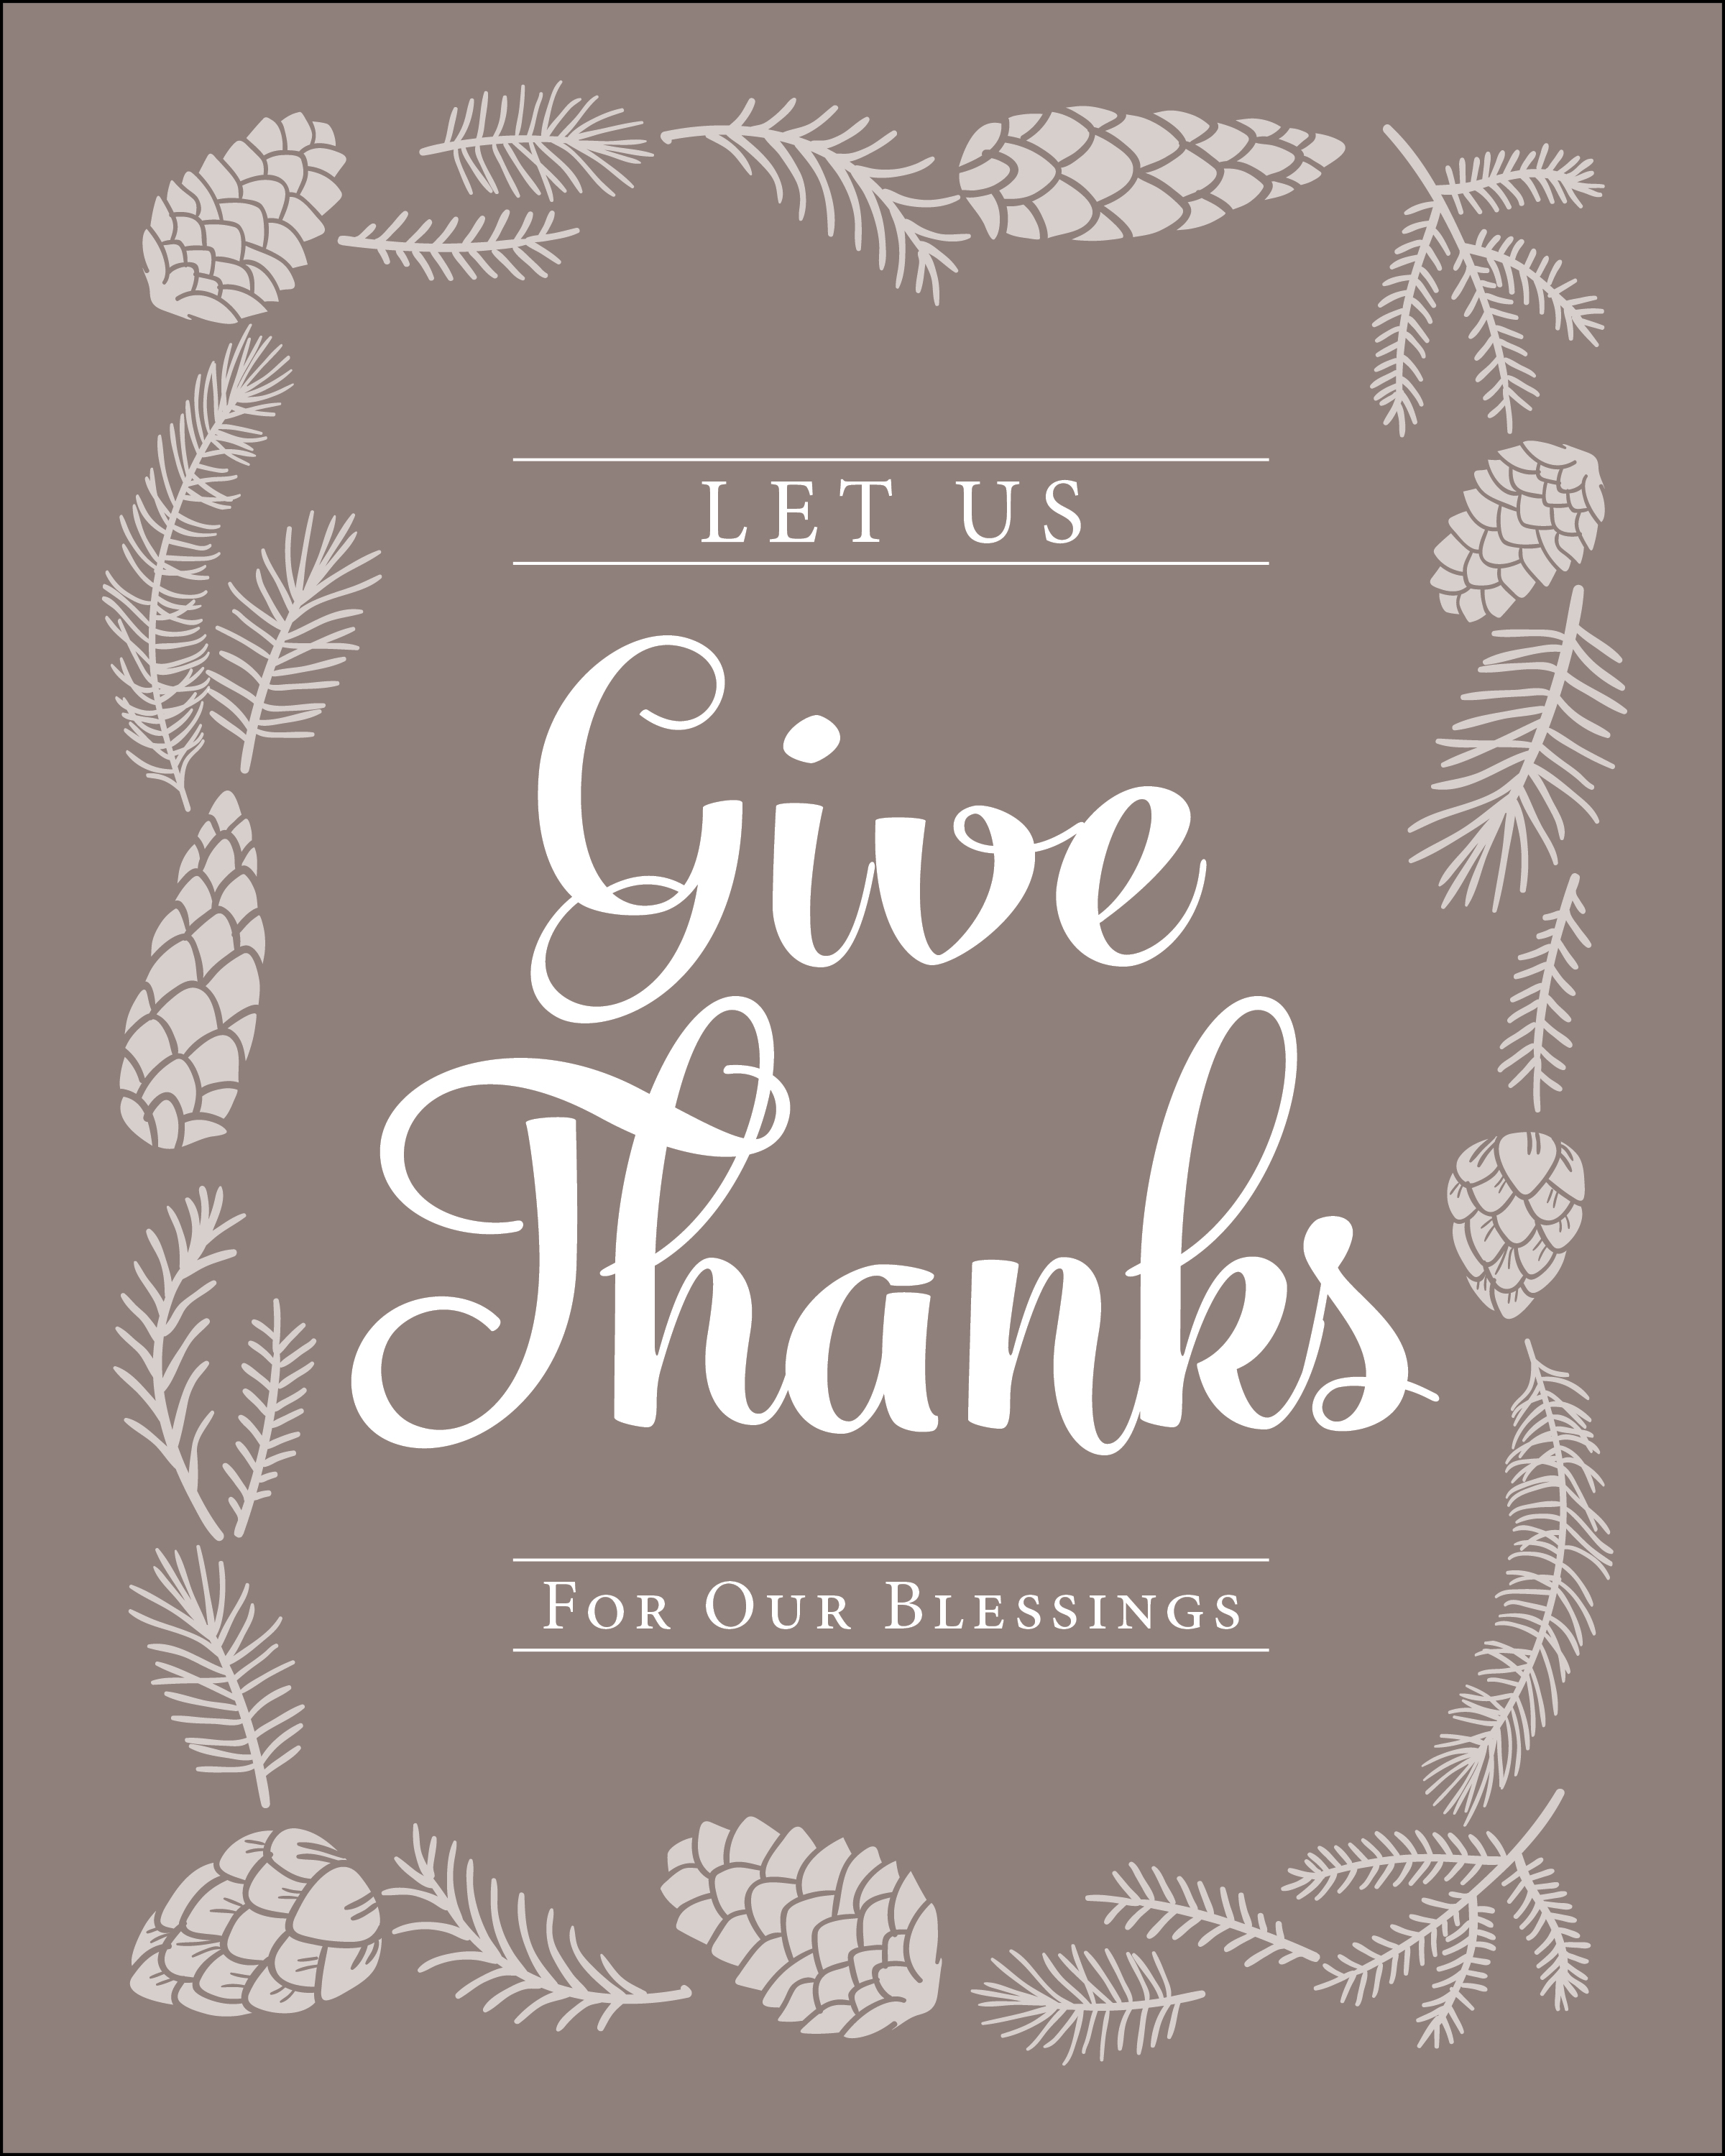 photograph relating to Give Thanks Printable titled Offer Because of Totally free Printable Beautiful Ink